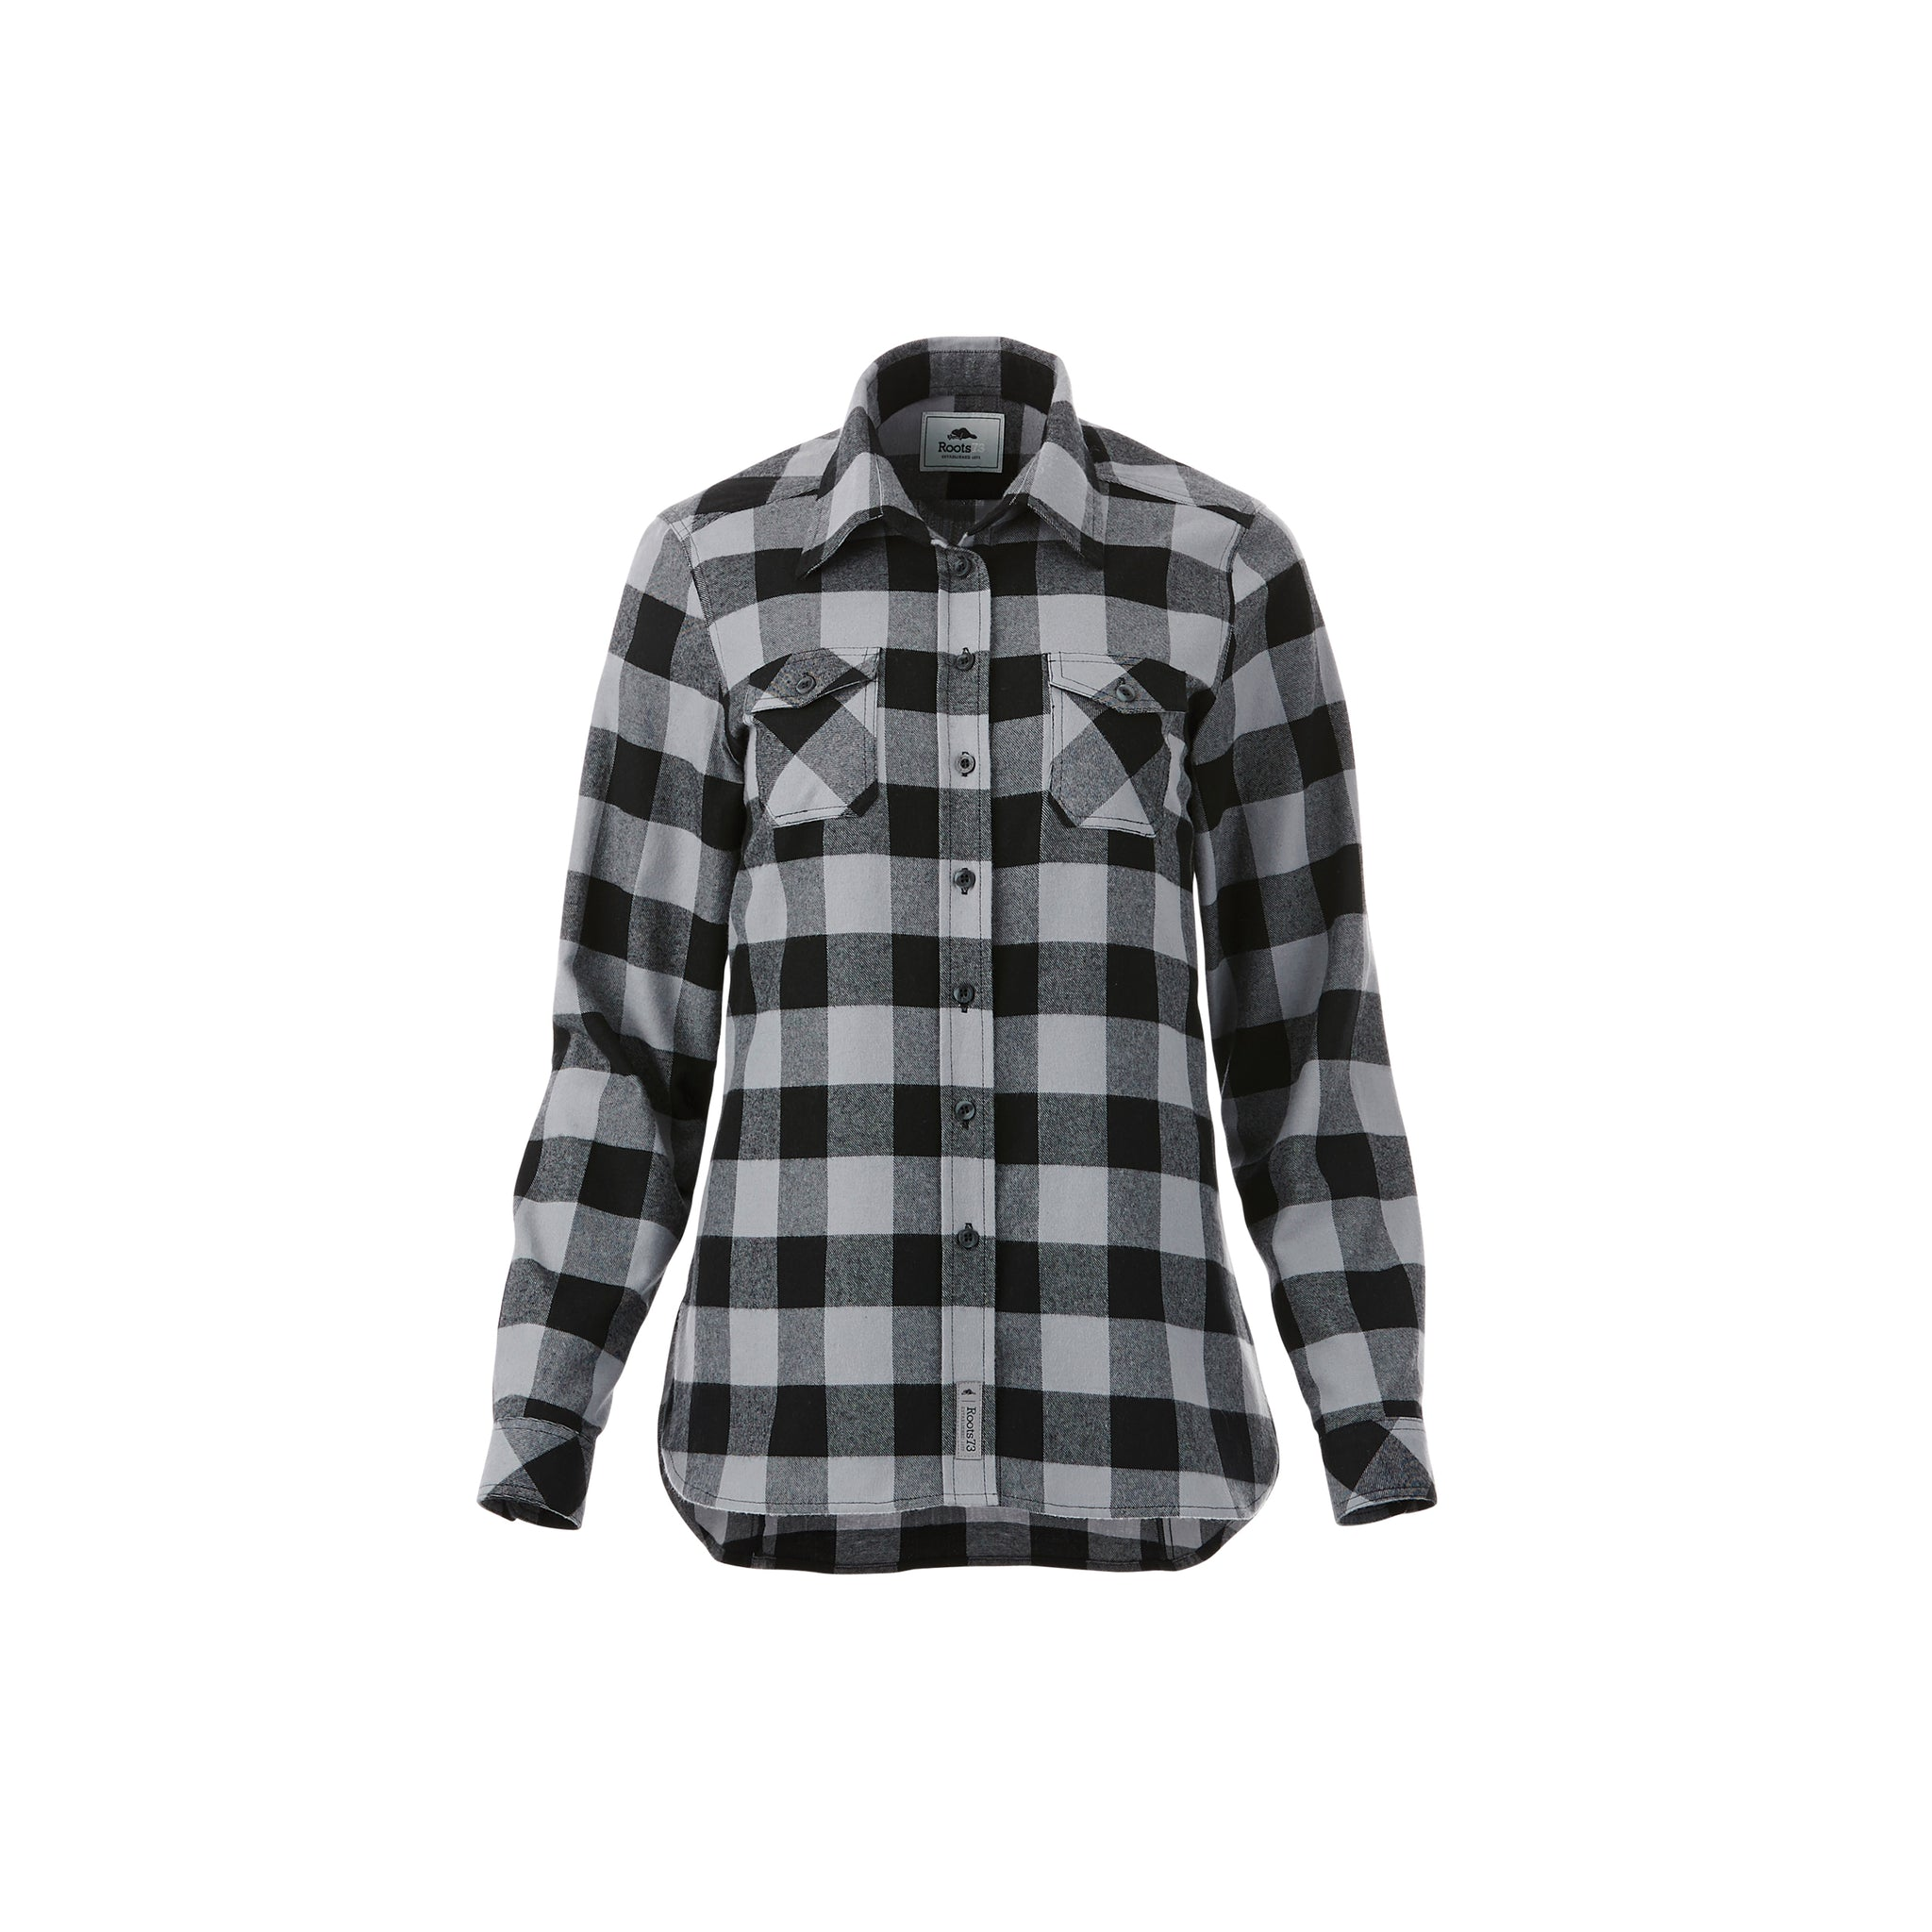 ROOTS73 WOMEN'S SPRUCELAKE PLAID LONG SLEEVE SHIRT